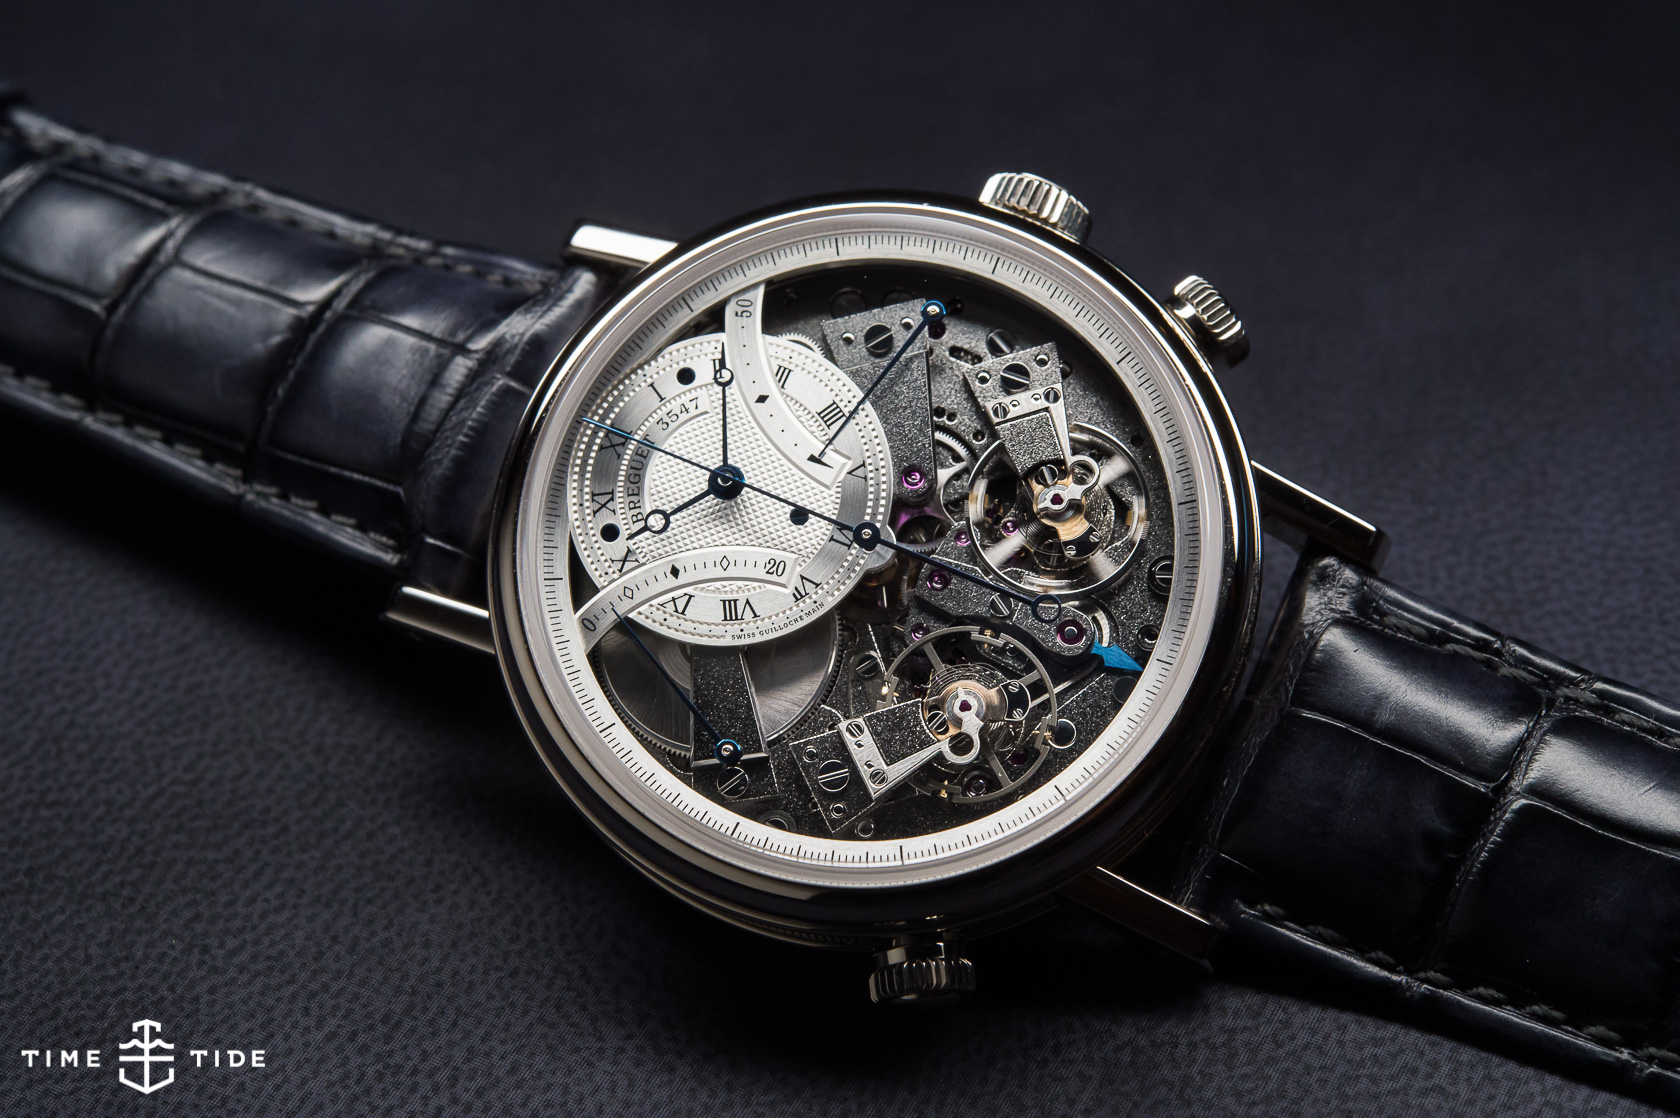 EDITOR'S PICK: If you love watches, then you need to know these 5 Breguet inventions